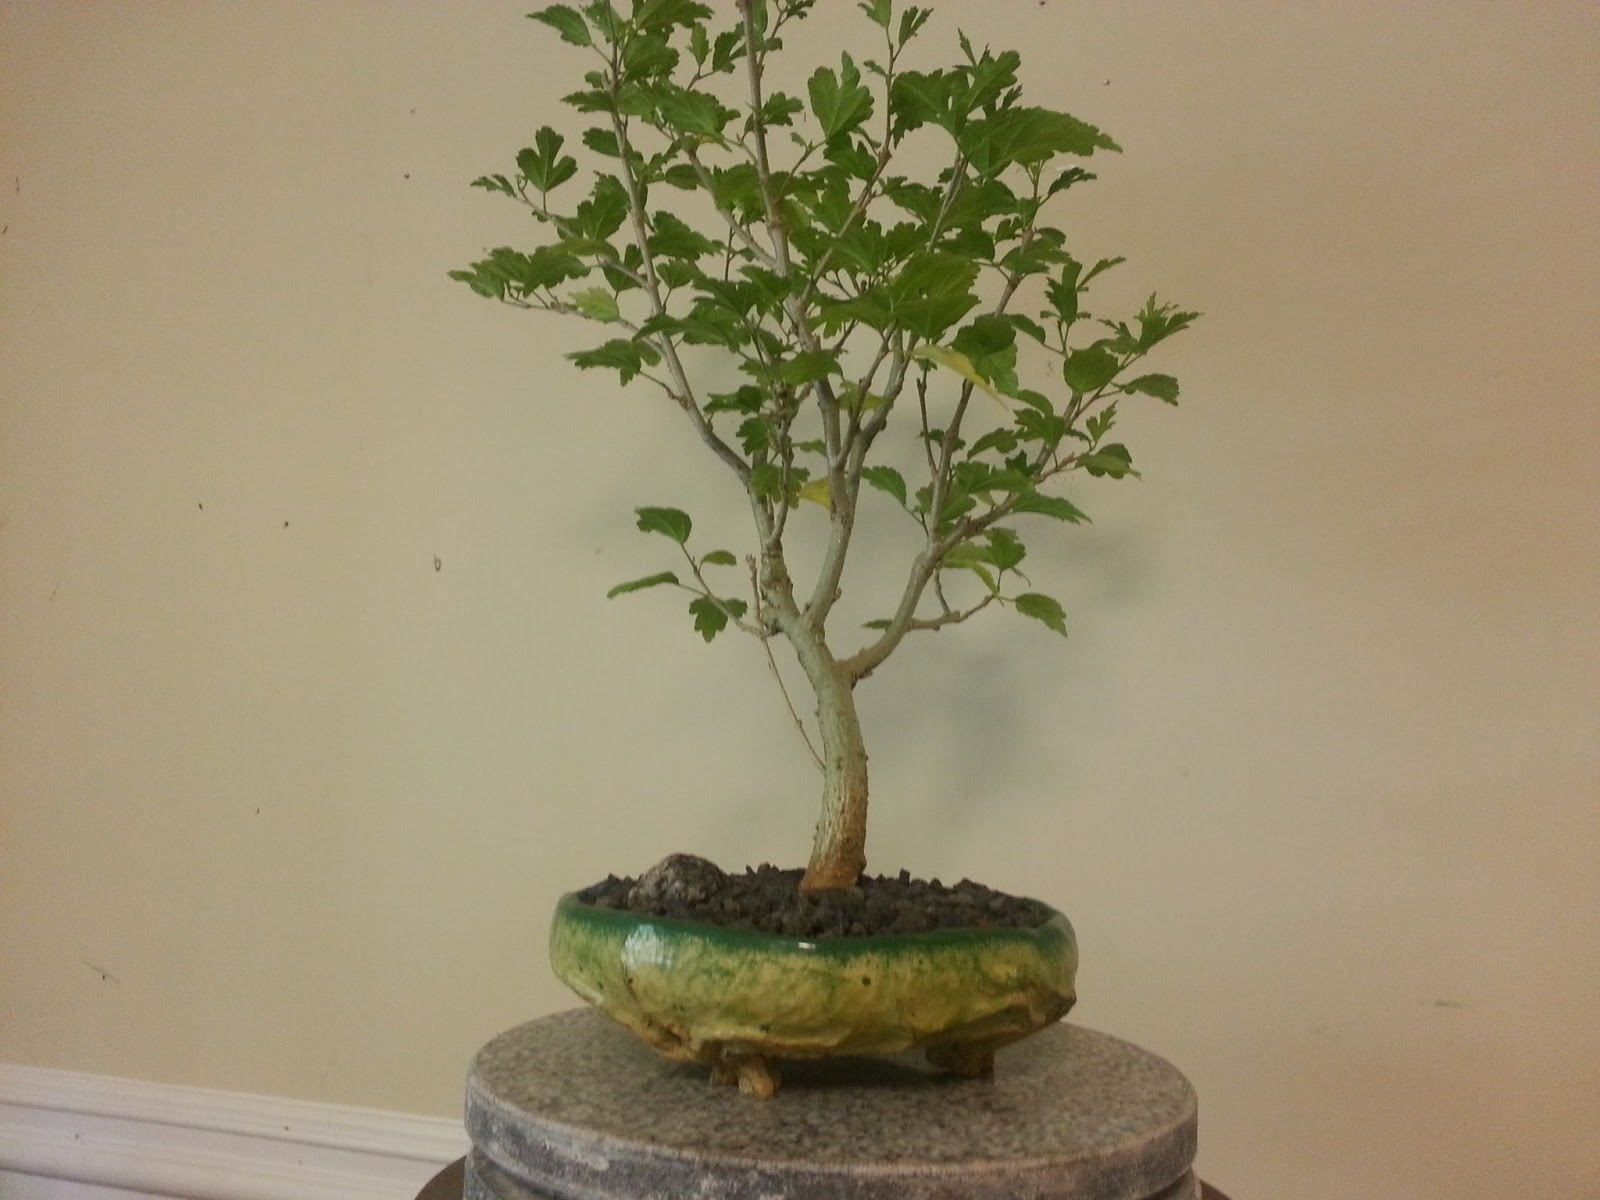 Bodhisattva Bonsai Rose Of Sharon Bonsai Getting Used To New Pot